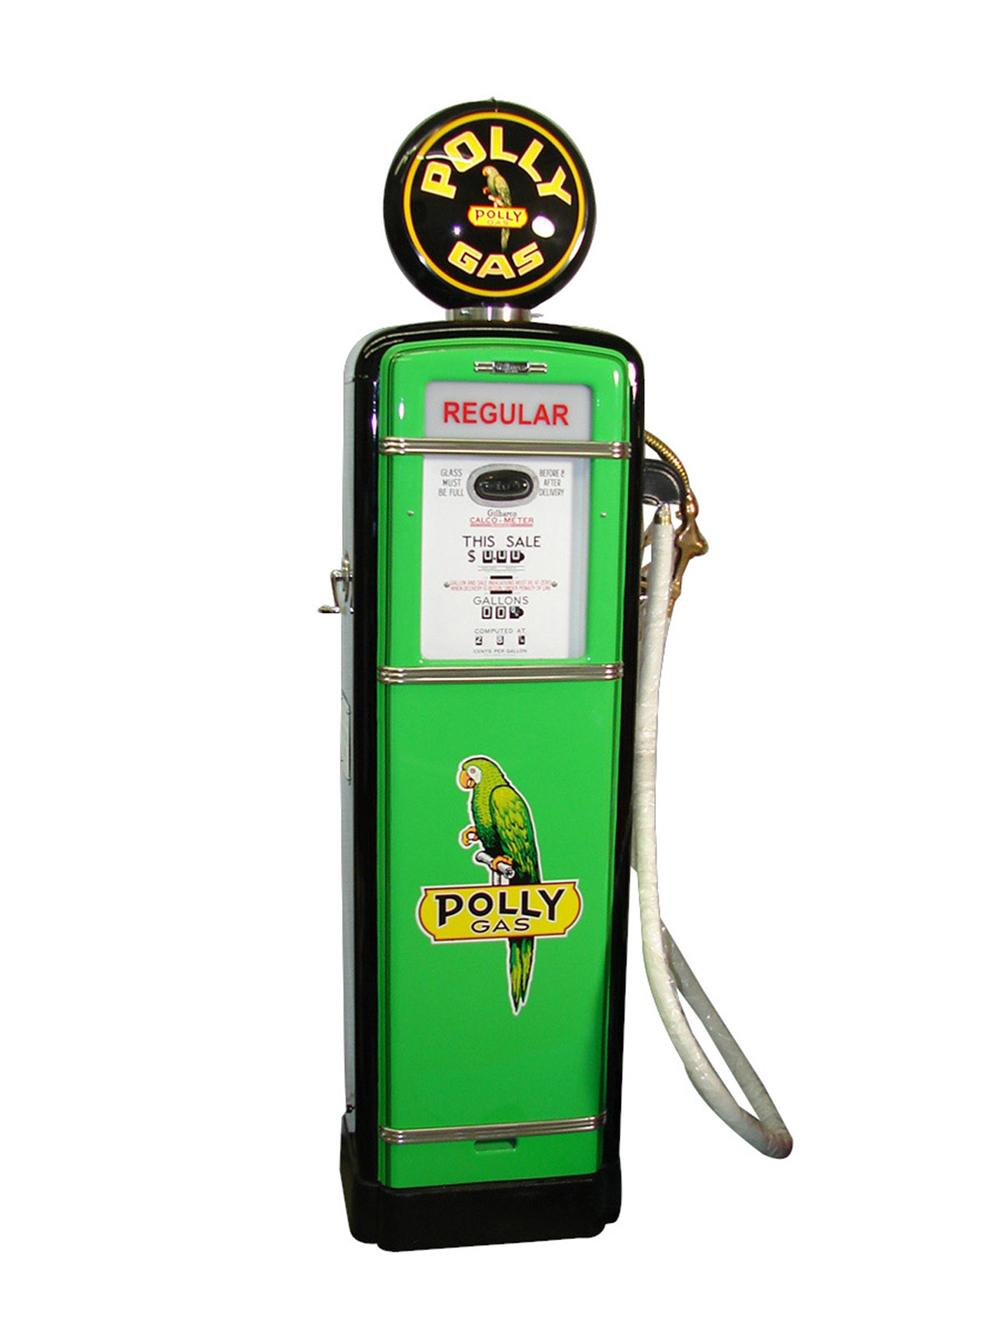 Choice Gilbarco 1950s Polly Gasoline restored service station gas pump. Professionally restored to highest standards. - Front 3/4 - 82069